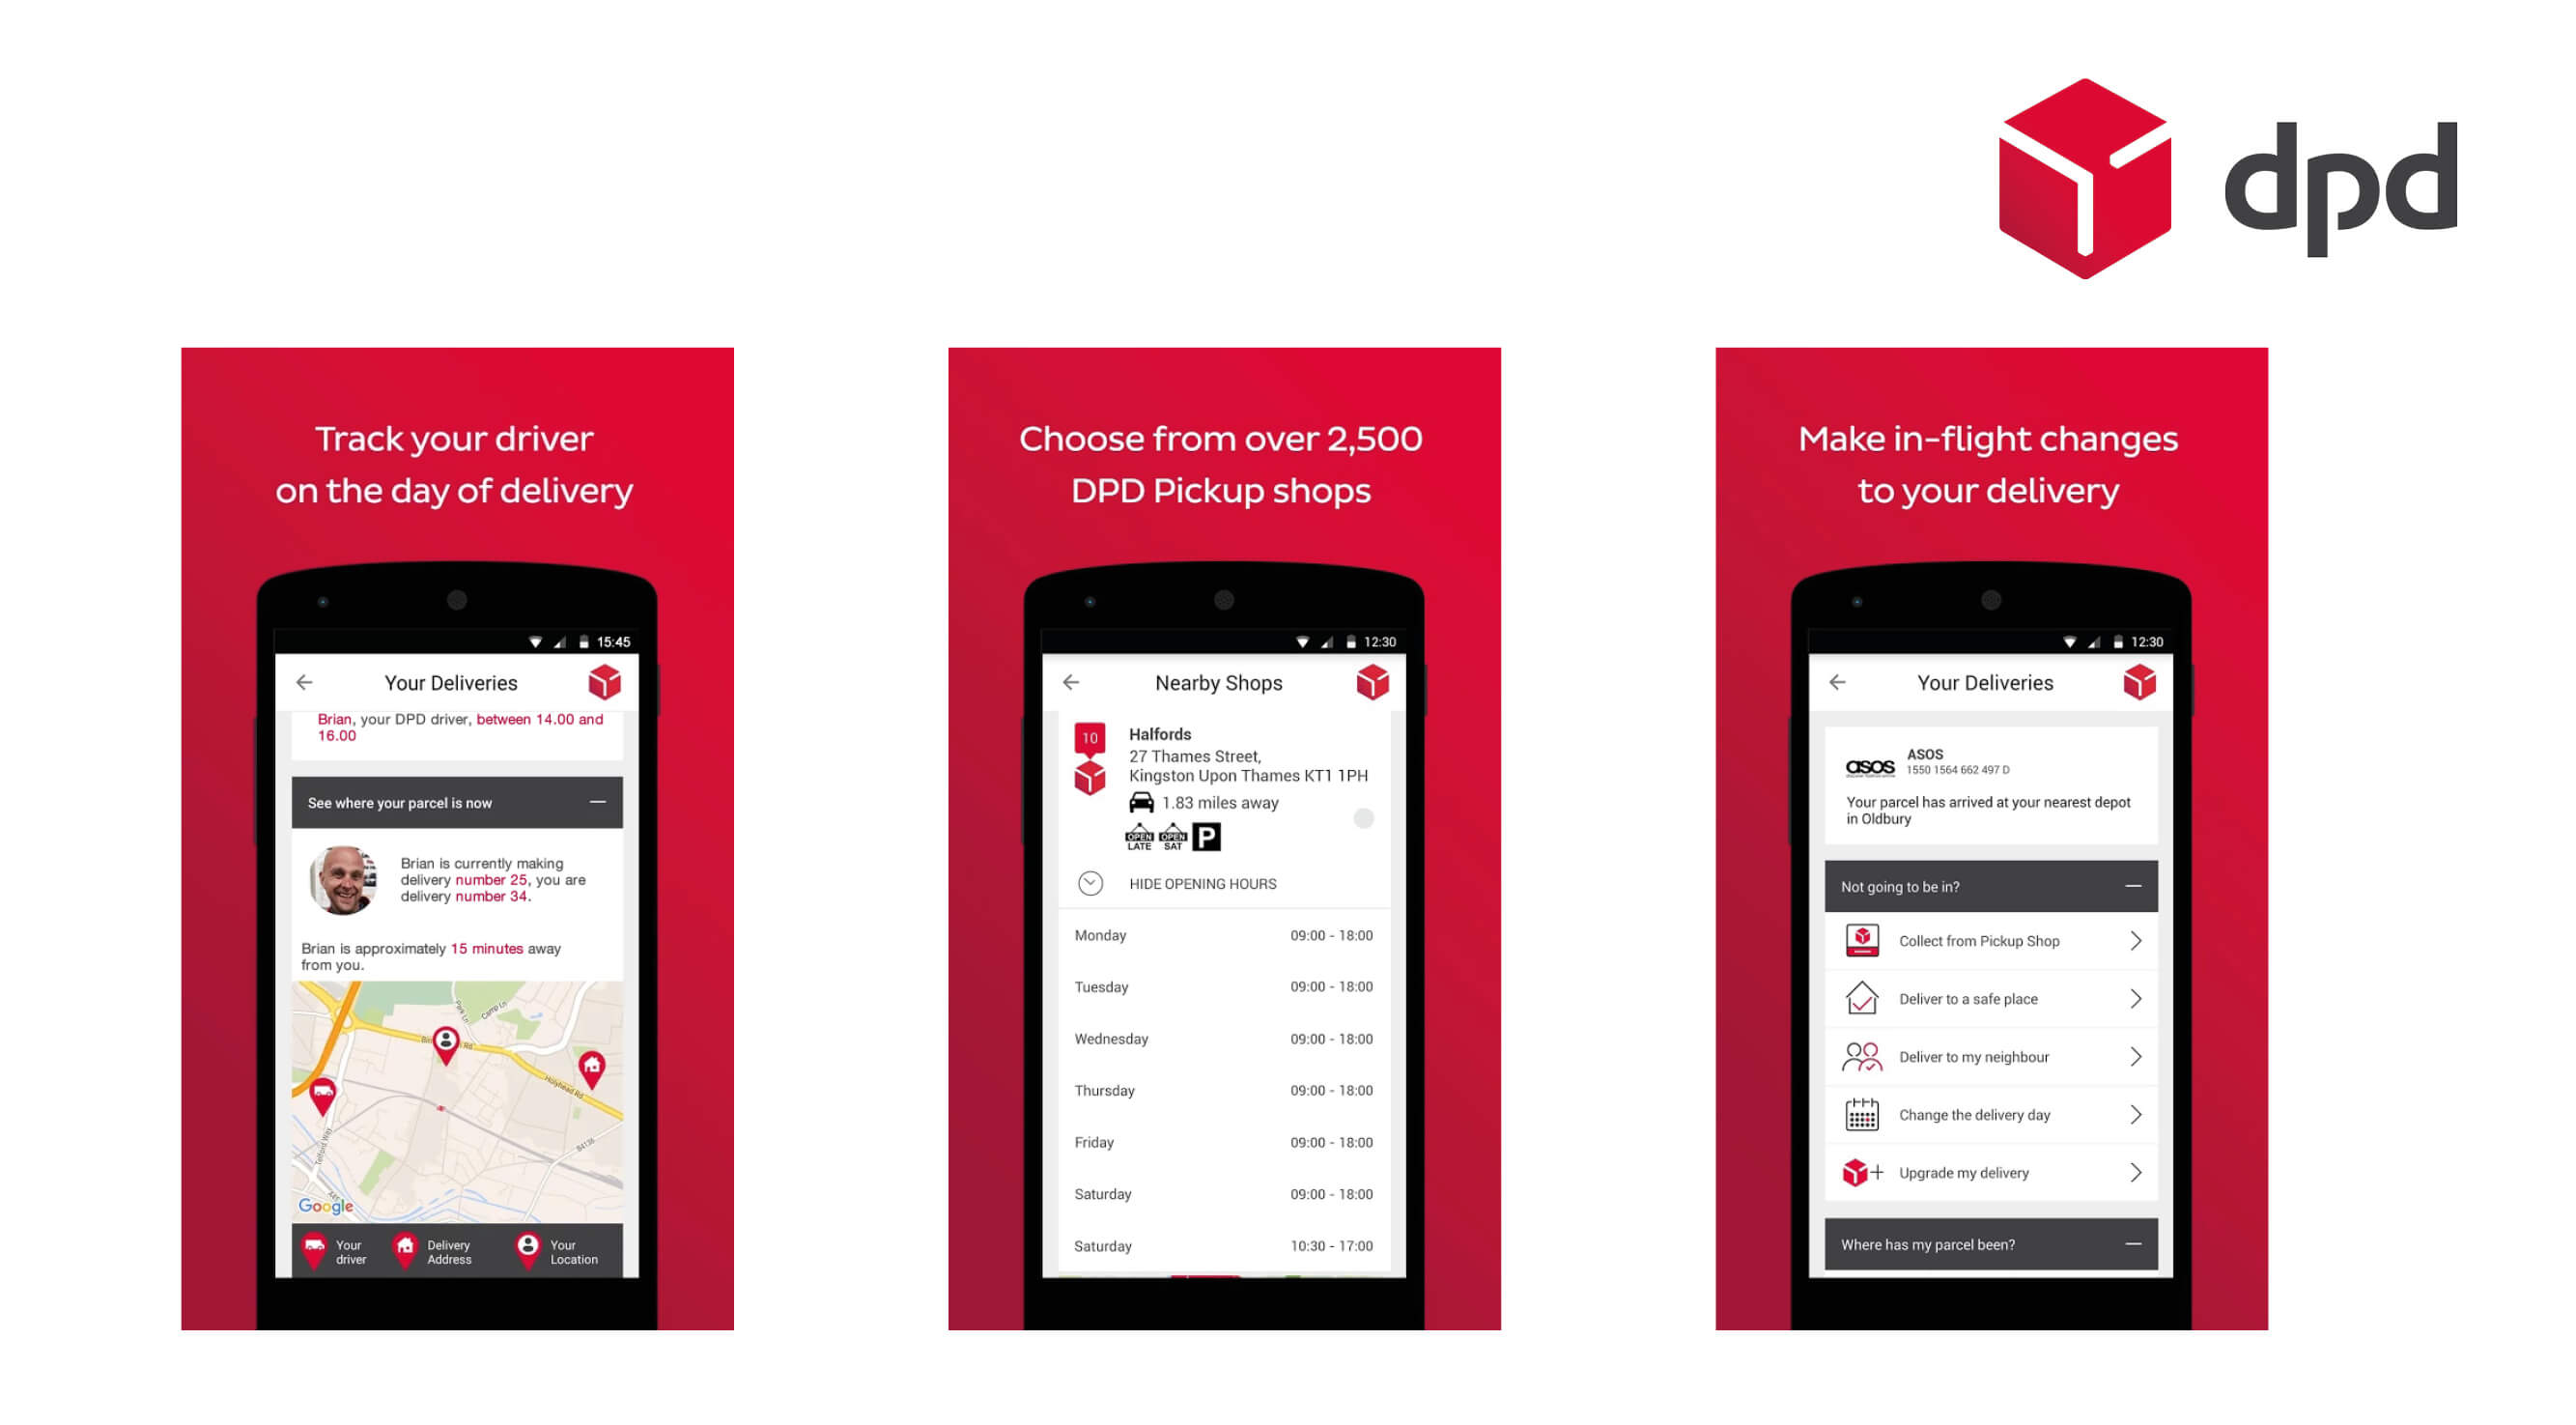 Introducing the new DPD app